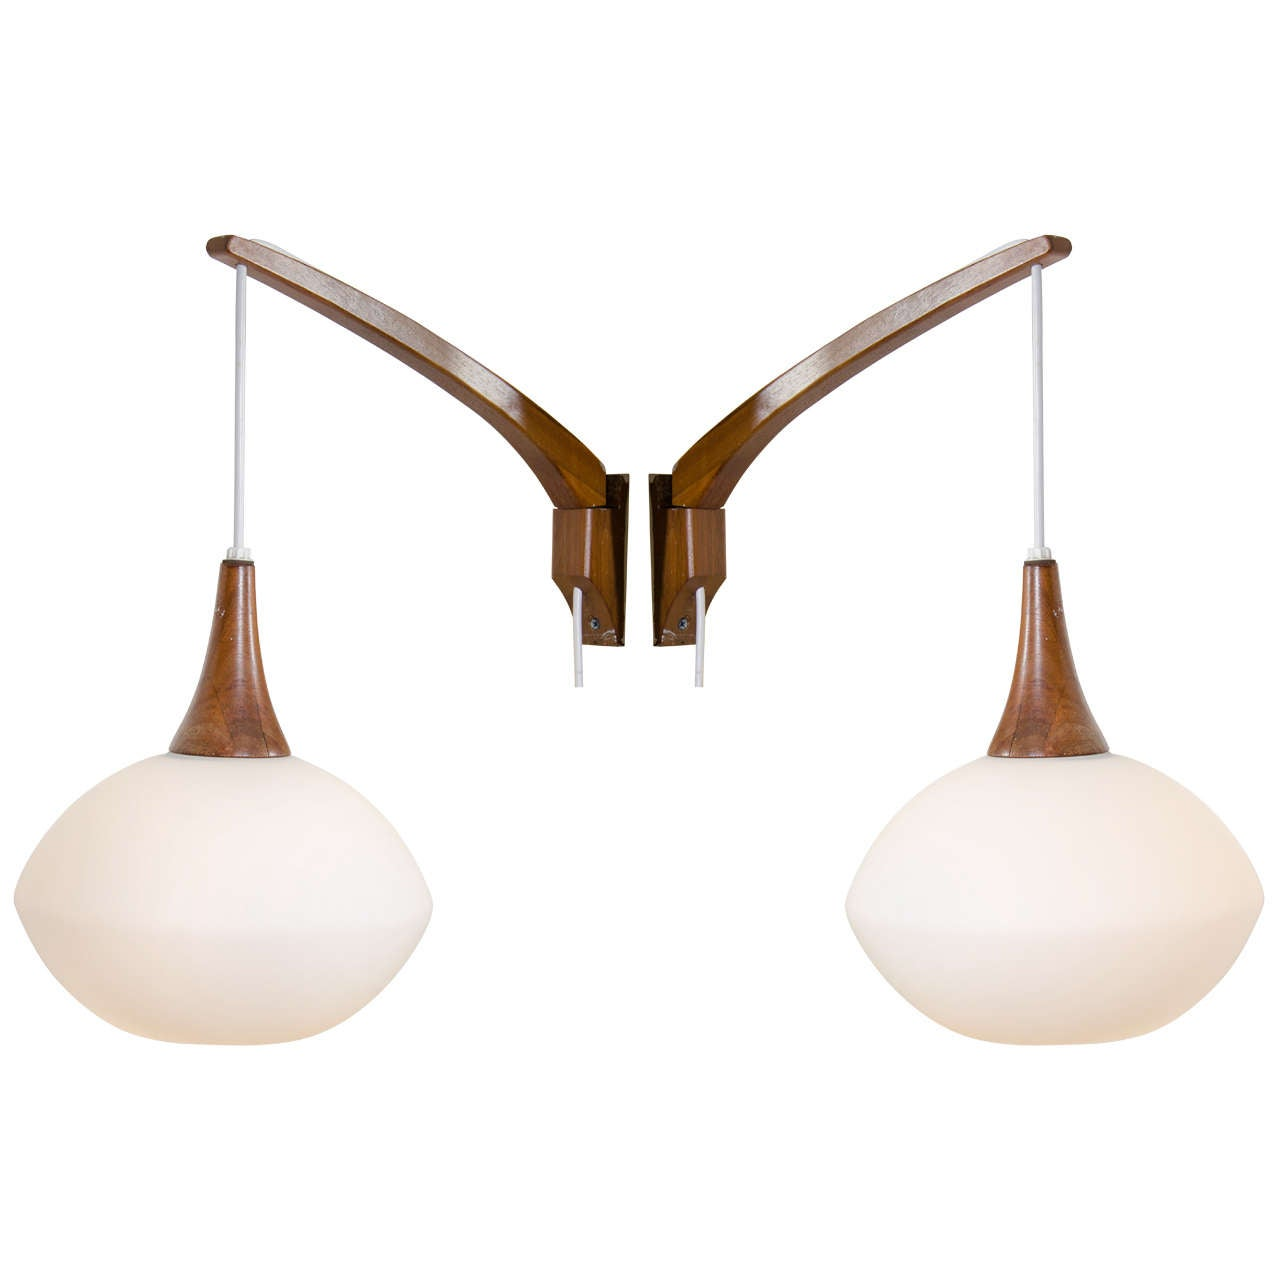 Superieur Pair Of Swedish Adjustable Wall Sconces By Luxus For Sale